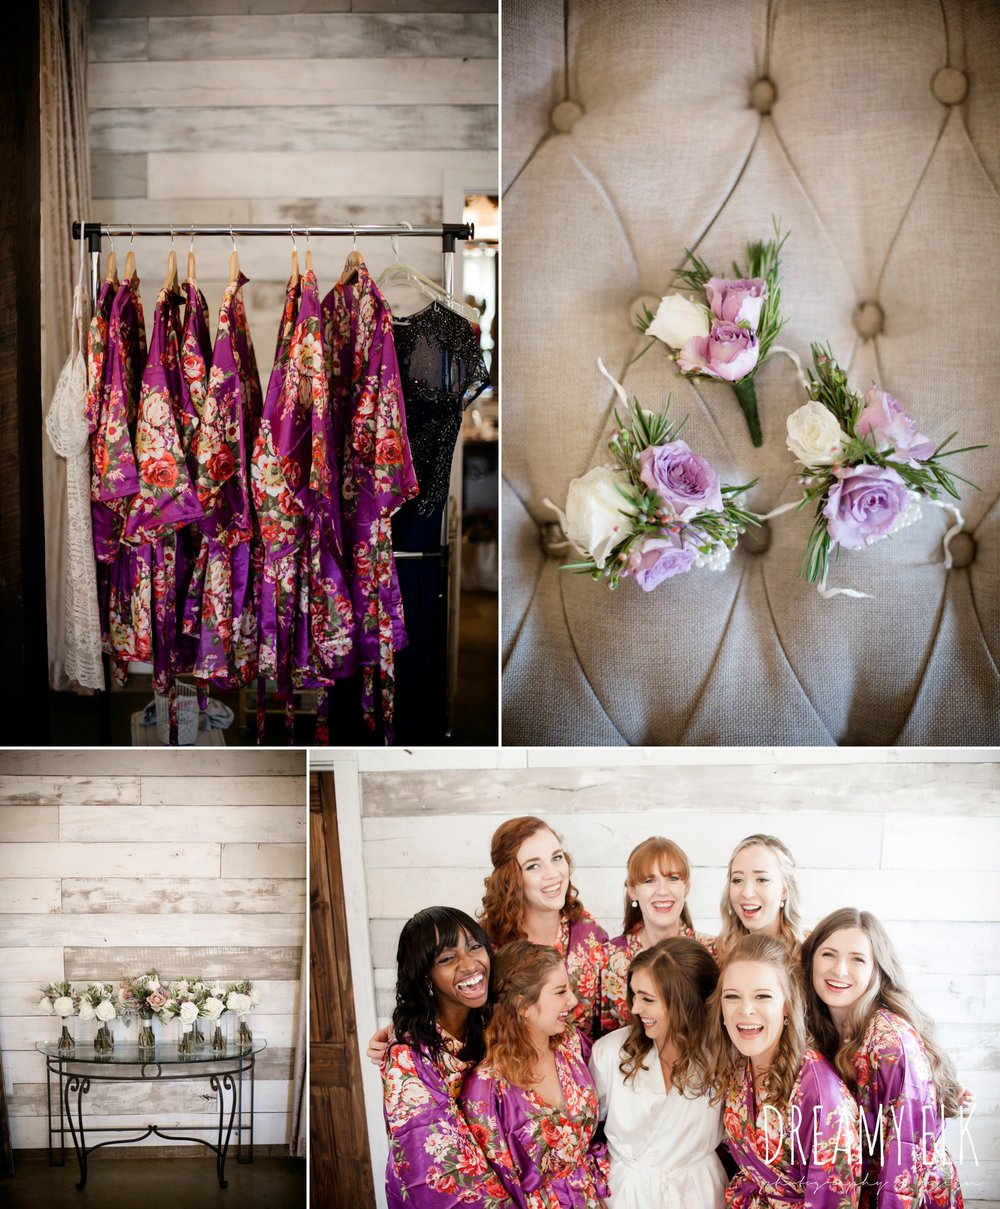 matching bridesmaids robes, boutonnieres, bride and bridesmaids, summer july wedding, lavender, big sky barn, houston, texas, austin wedding photographer {dreamy elk photography and design} photo